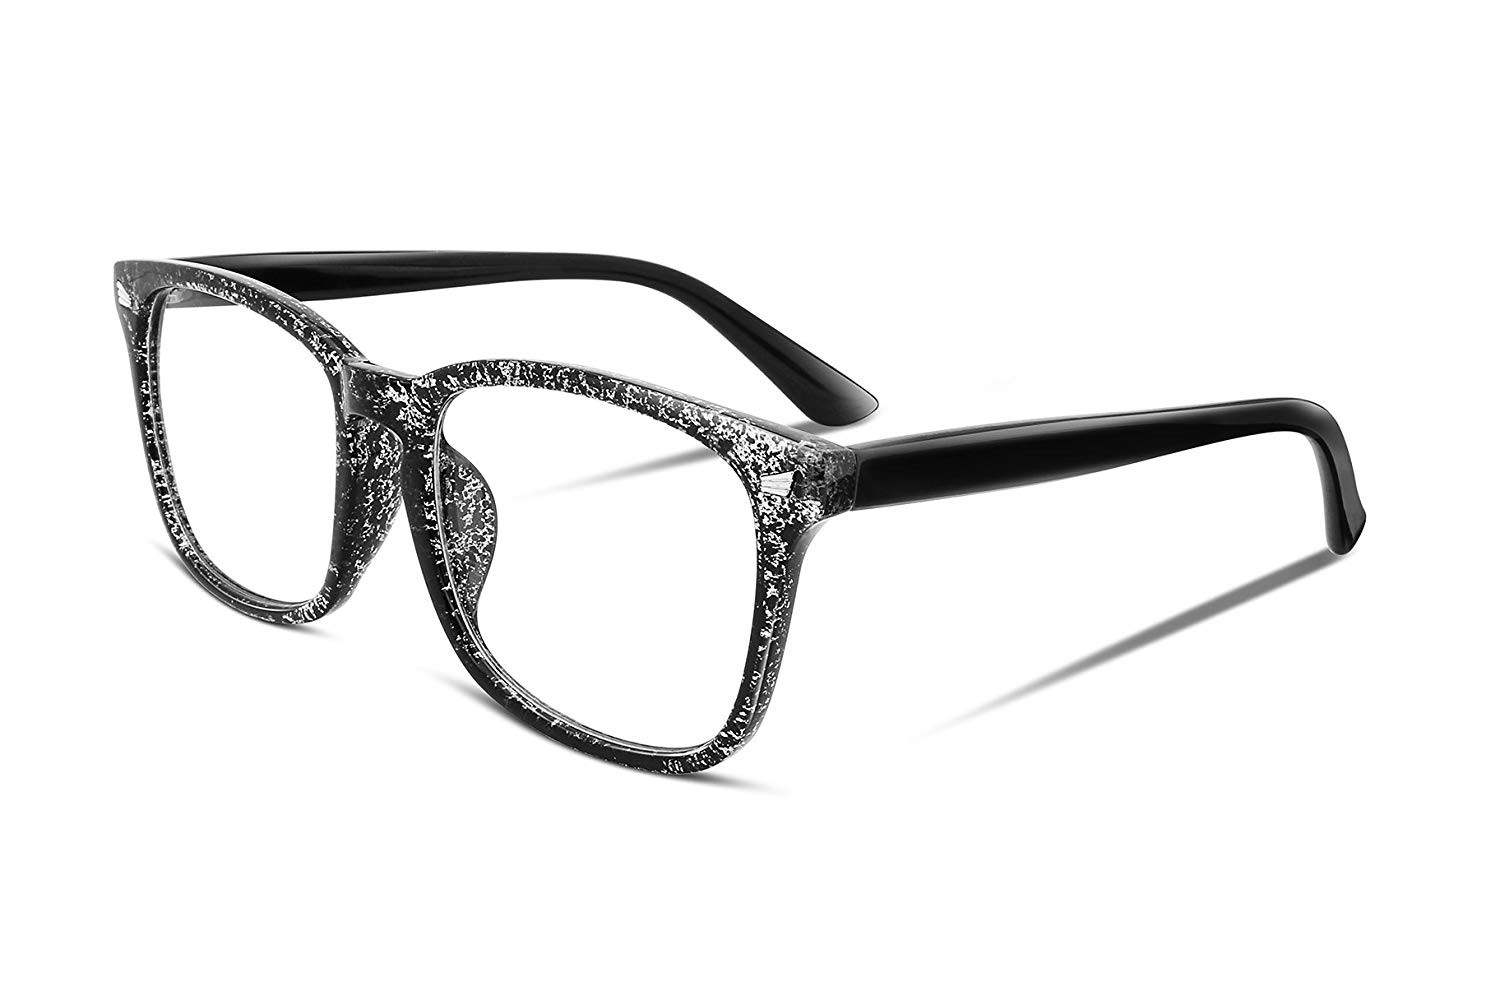 51902a9a9d9 Get Quotations · FEISEDY Square Non prescription Glasses Frame Men Womens  Optical Eyewear Frame B2286